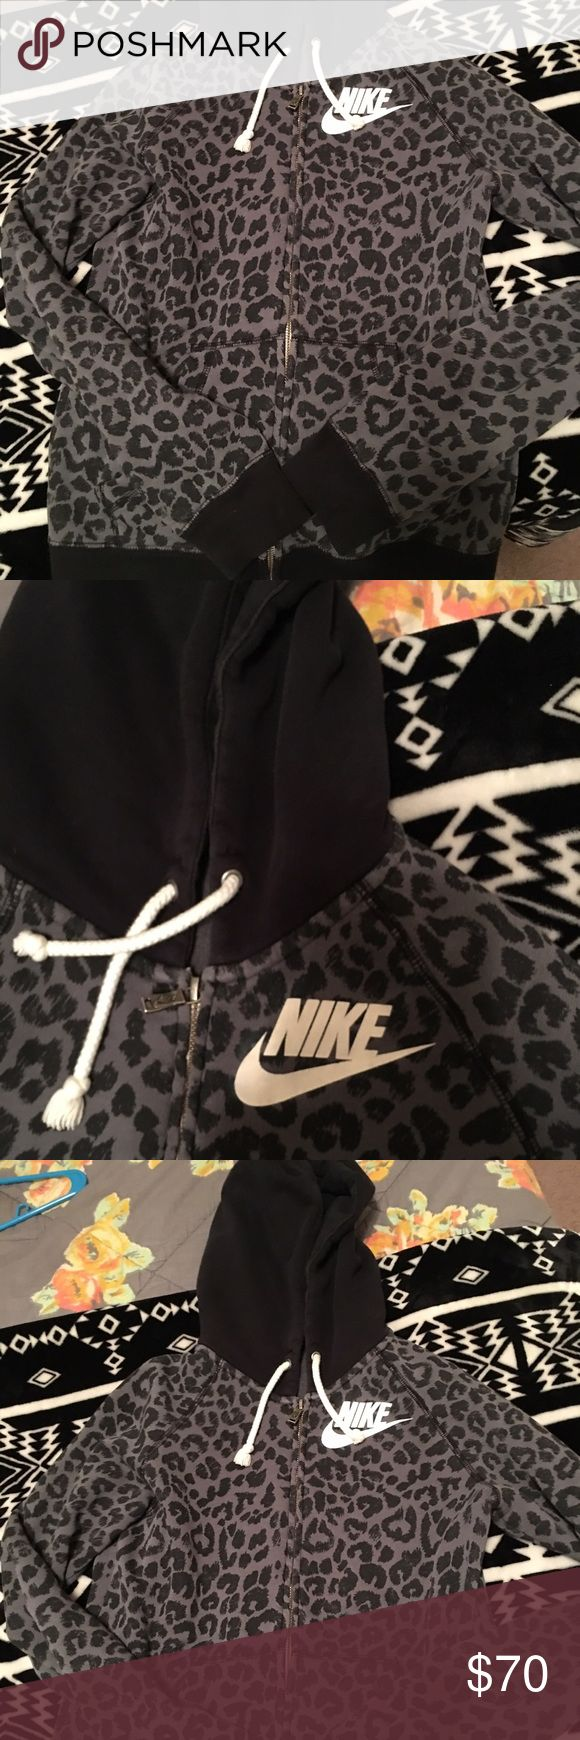 XS HTF rare Nike Leopard Full Zip XS NWOT Nike leopard full zip hoodie. This is an extremely rare piece. Will trade for other XS Nike rally collection, Nike rally sweats or skinny leggings, XS rare vs pink, vs Pink Patriots  or Nike patriots gear. Not selling ATM Nike Tops Sweatshirts & Hoodies